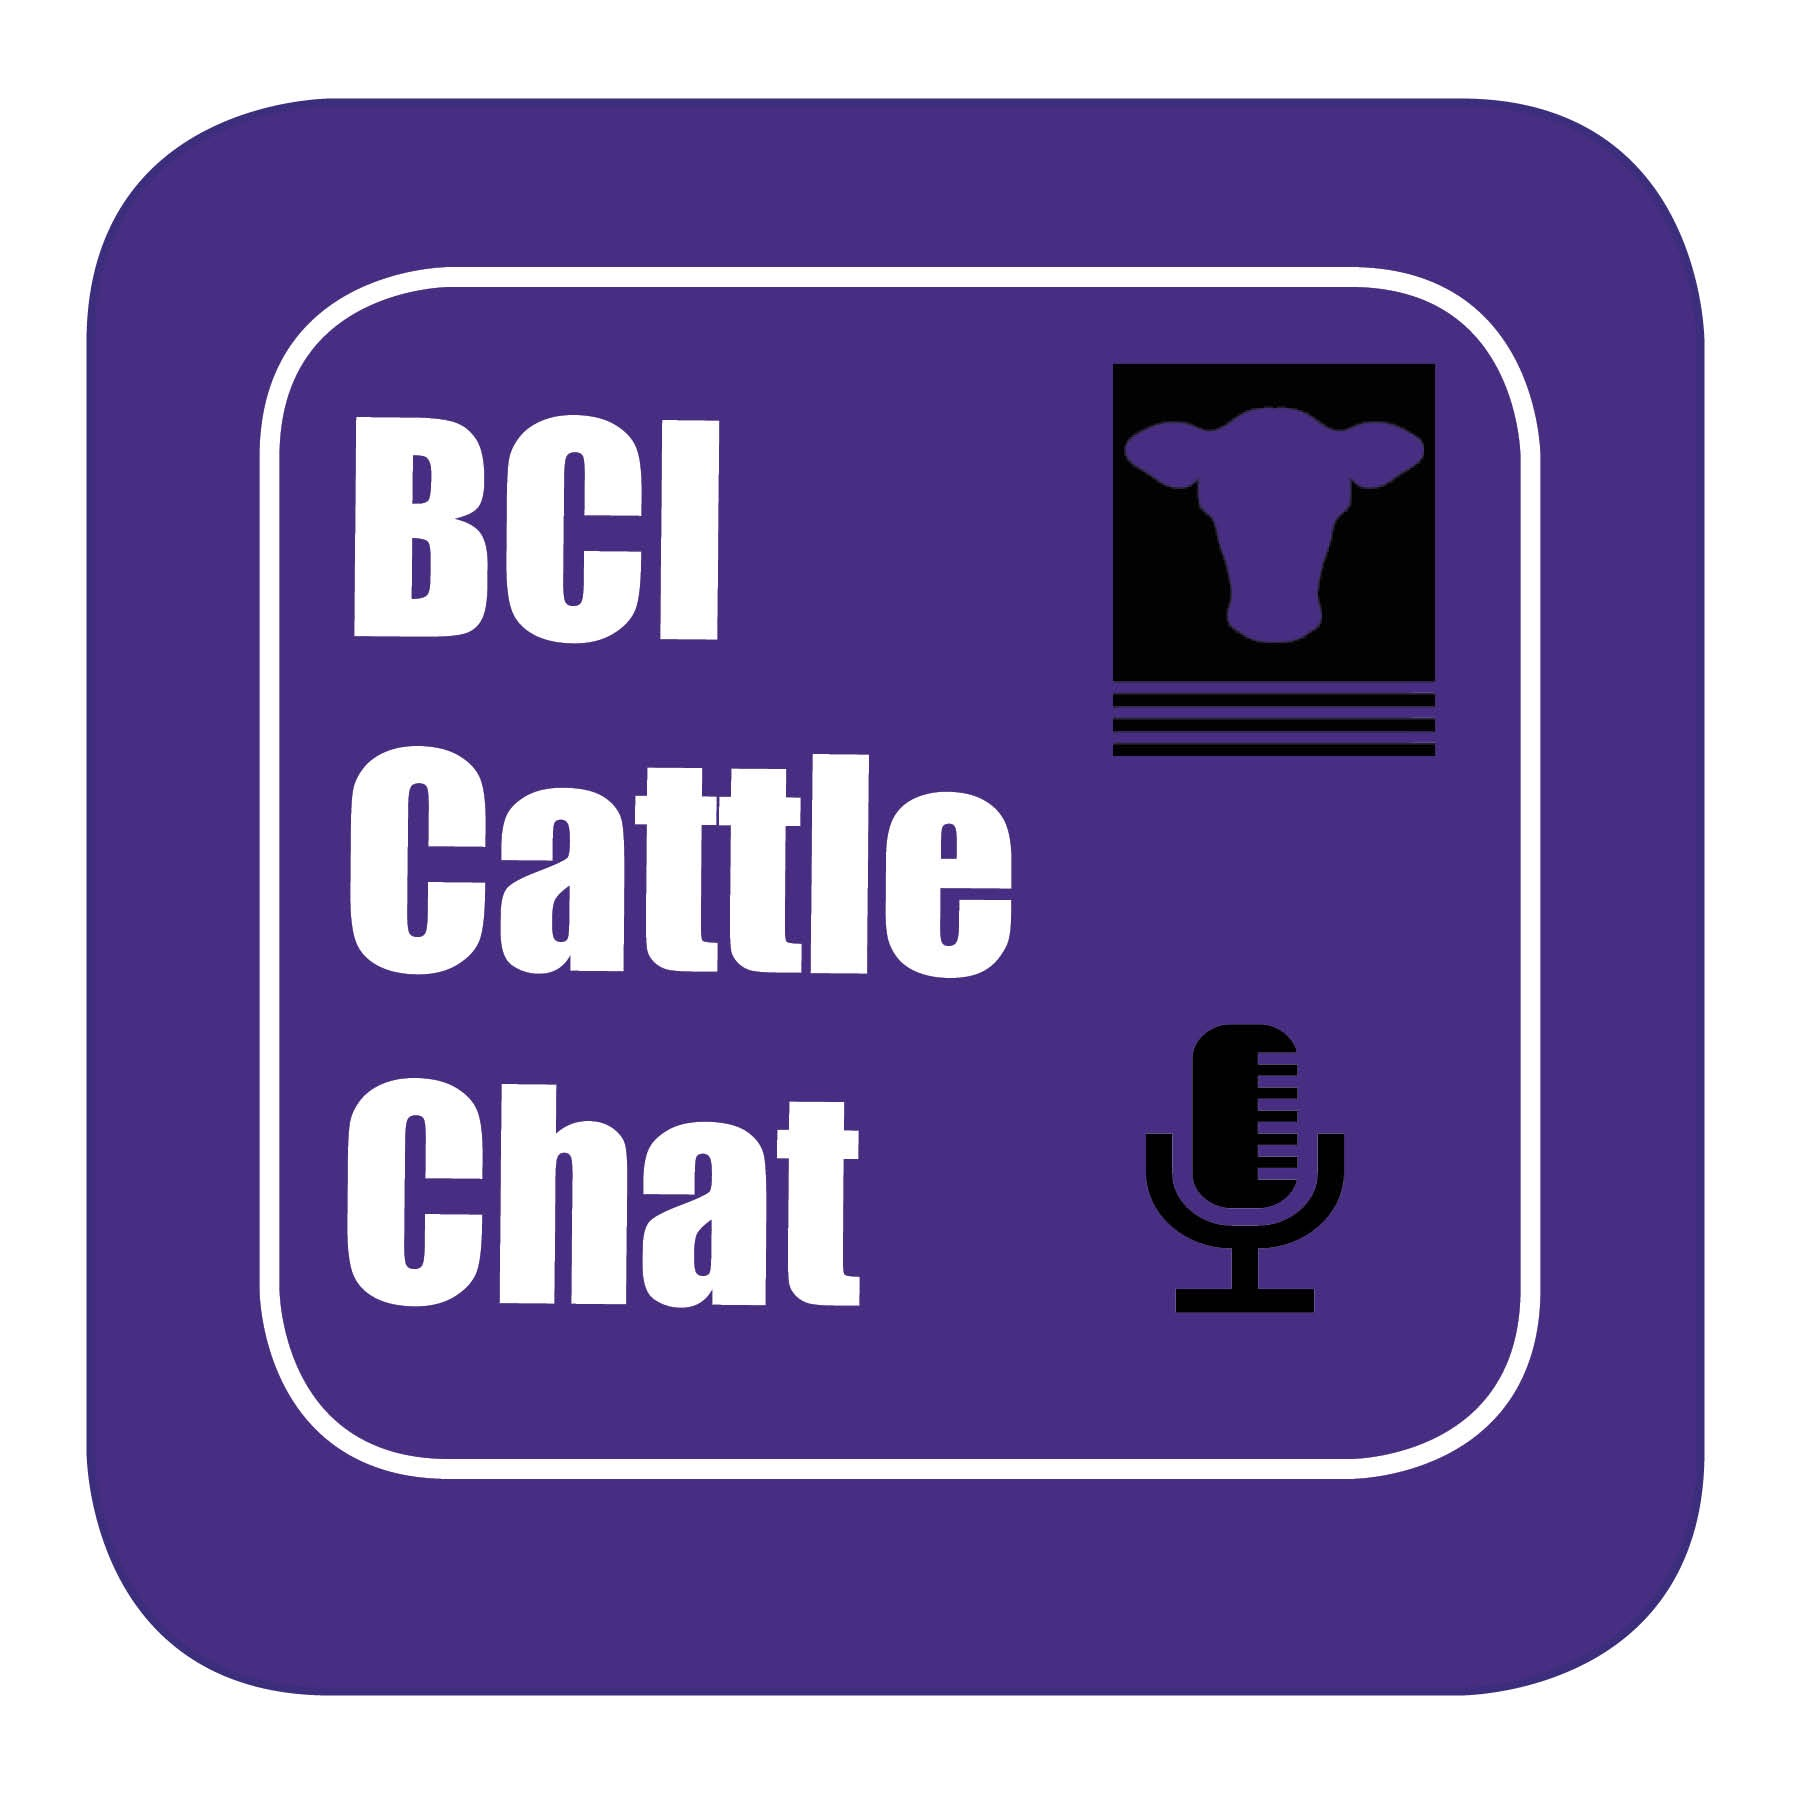 BCI Cattle Chat - Episode 16